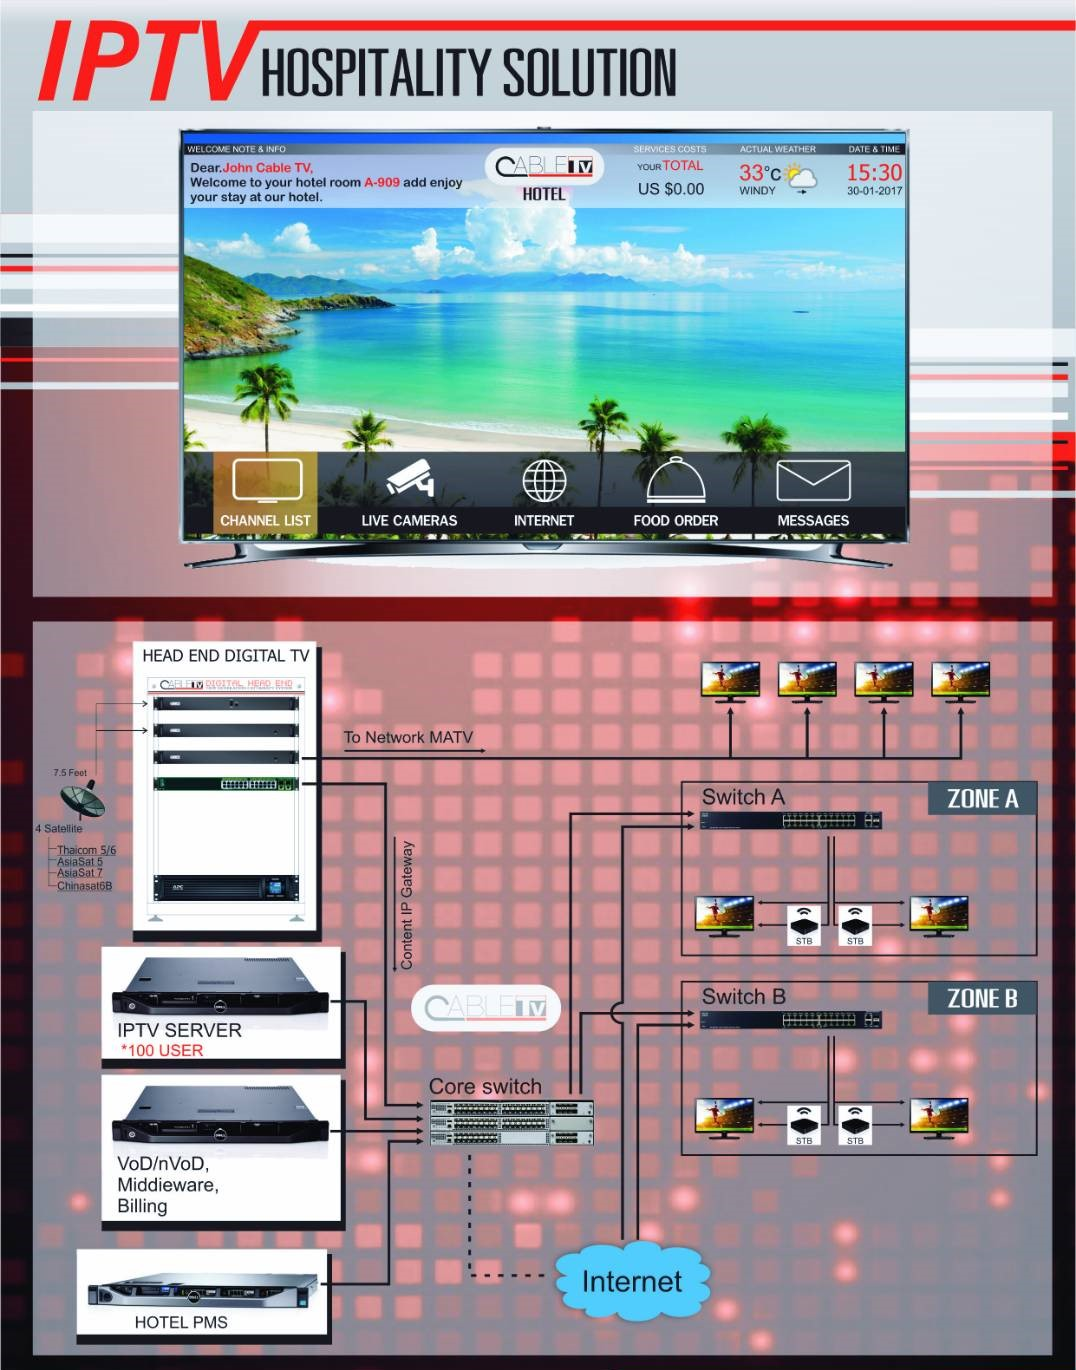 IPTV for Hospital and Hotel and Tower